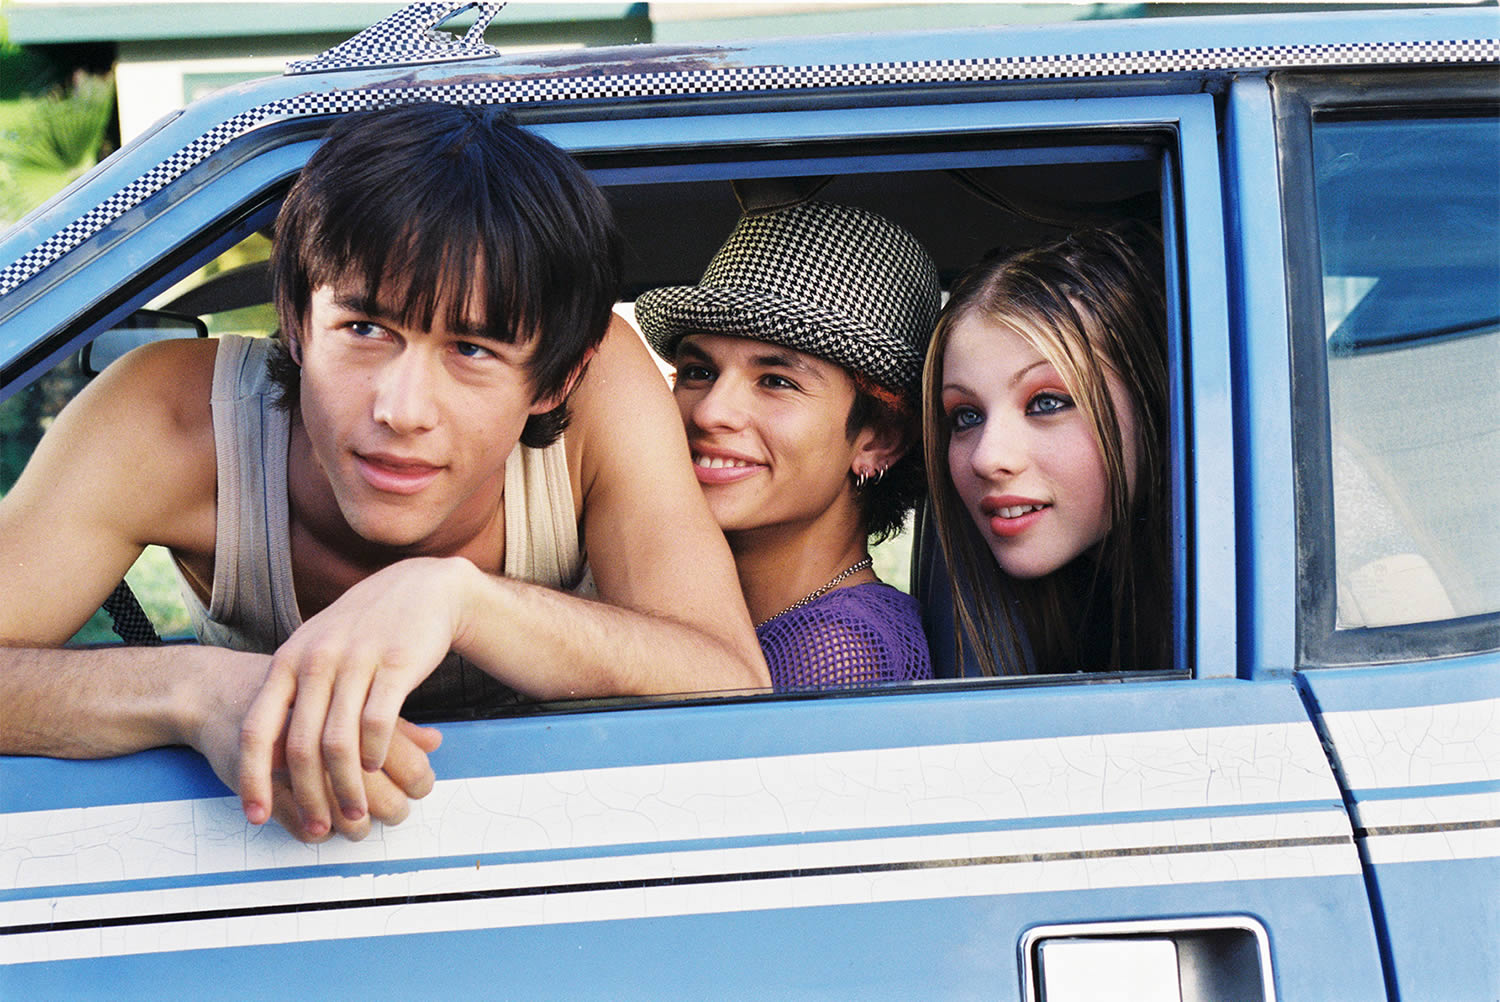 Joseph Gordon-Levitt in a car in mysterious skin